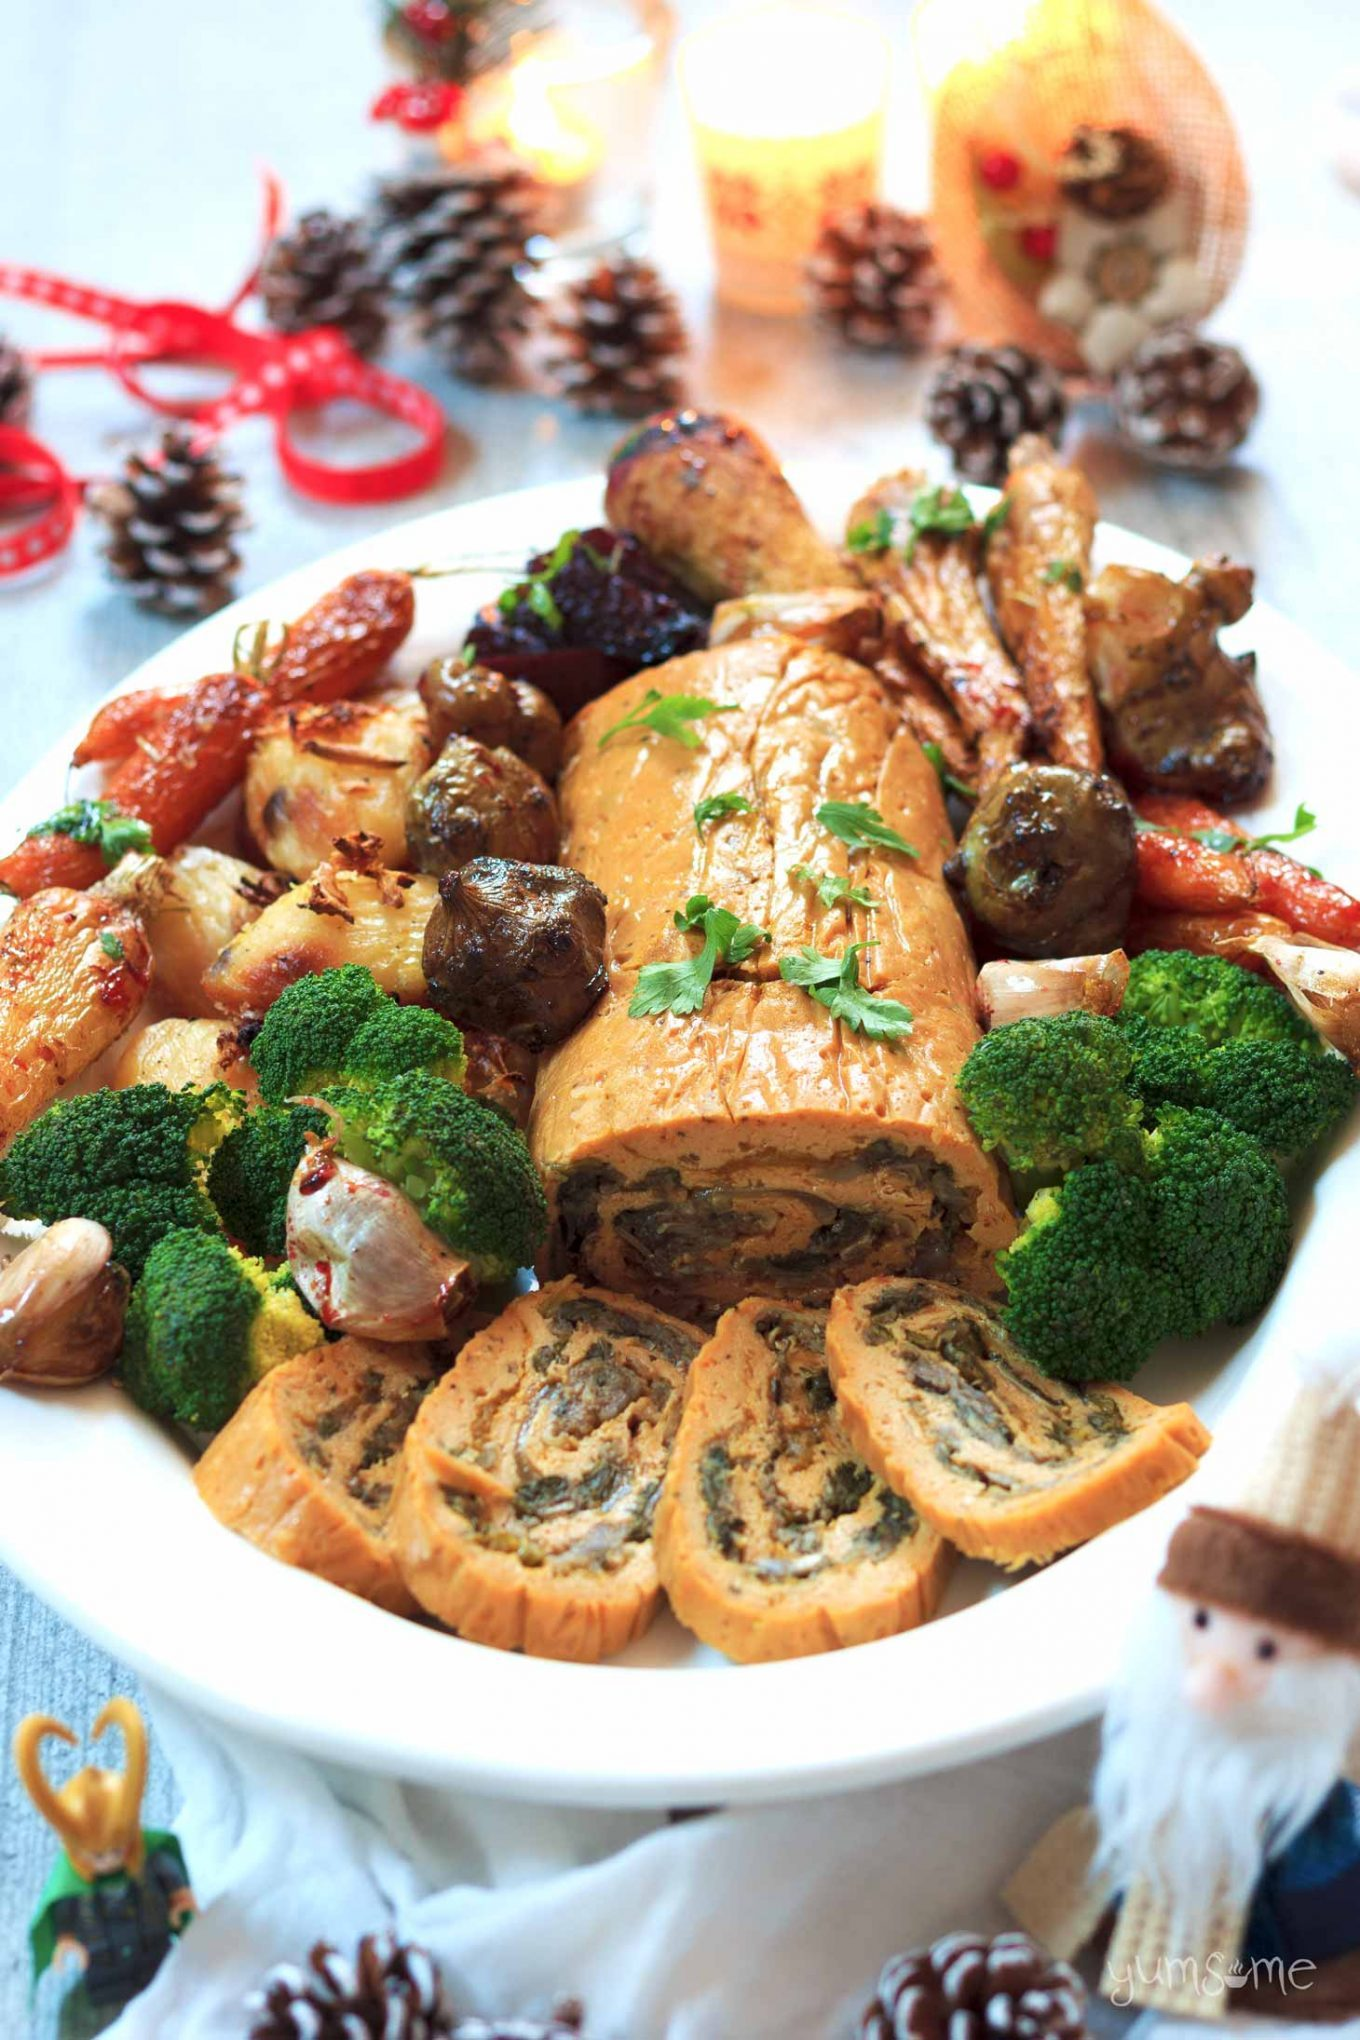 Vegan stuffed seitan roast with all the trimmings, plus some festive decorations.